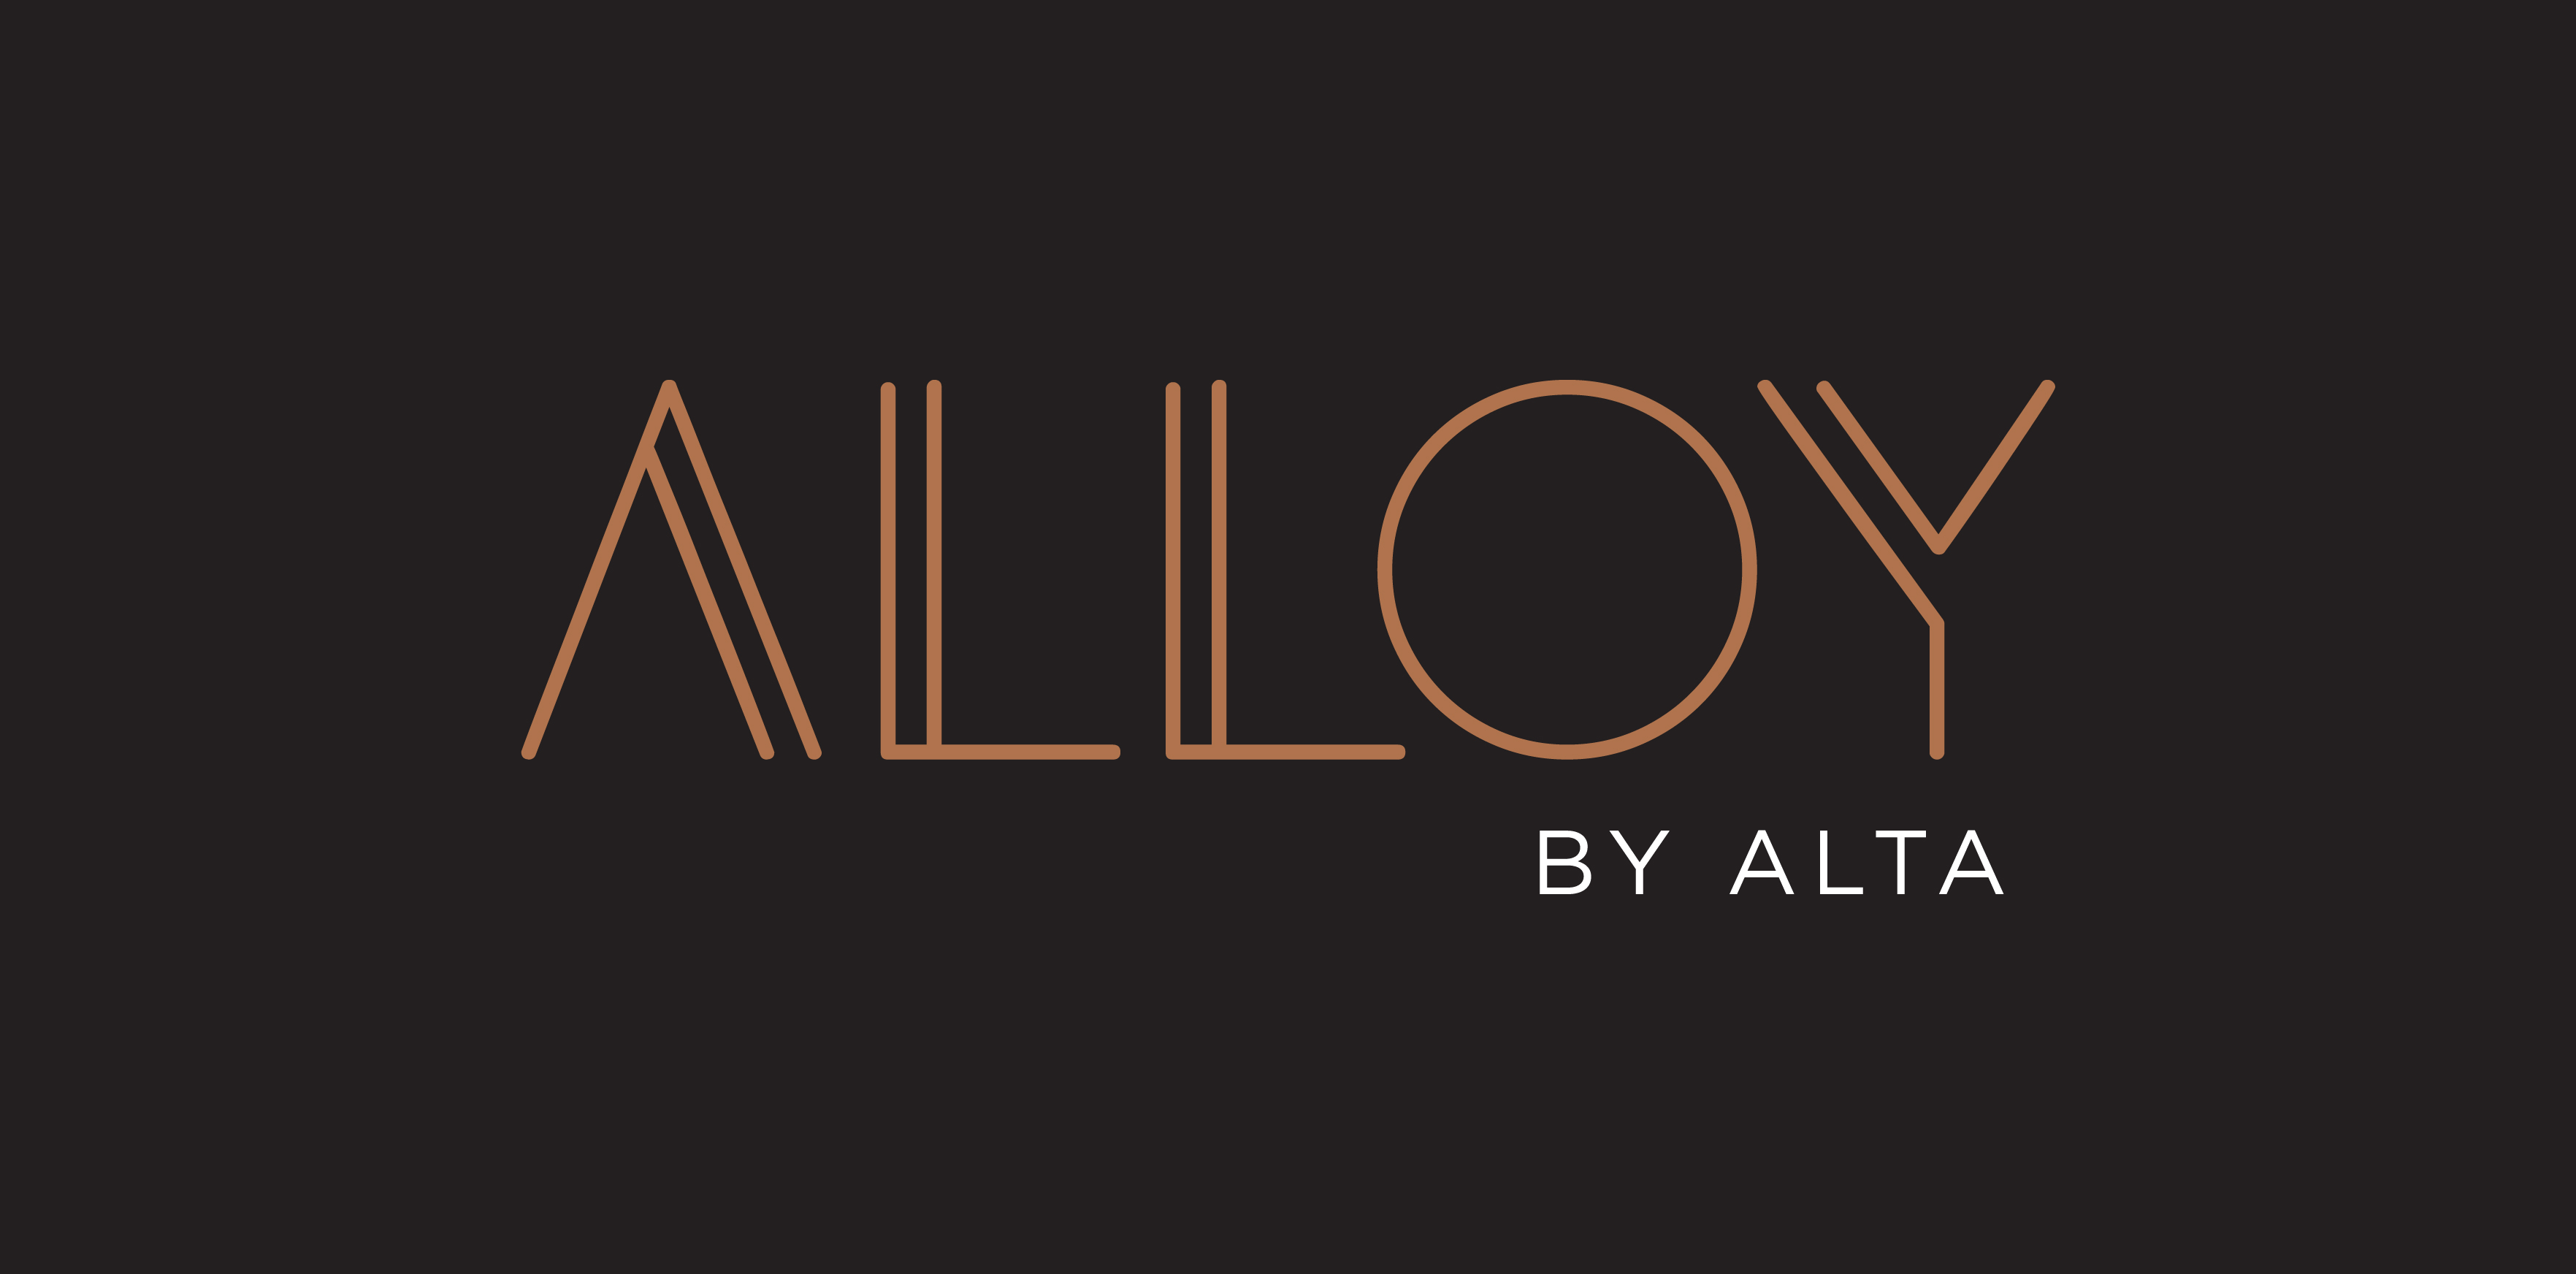 Alloy by Alta